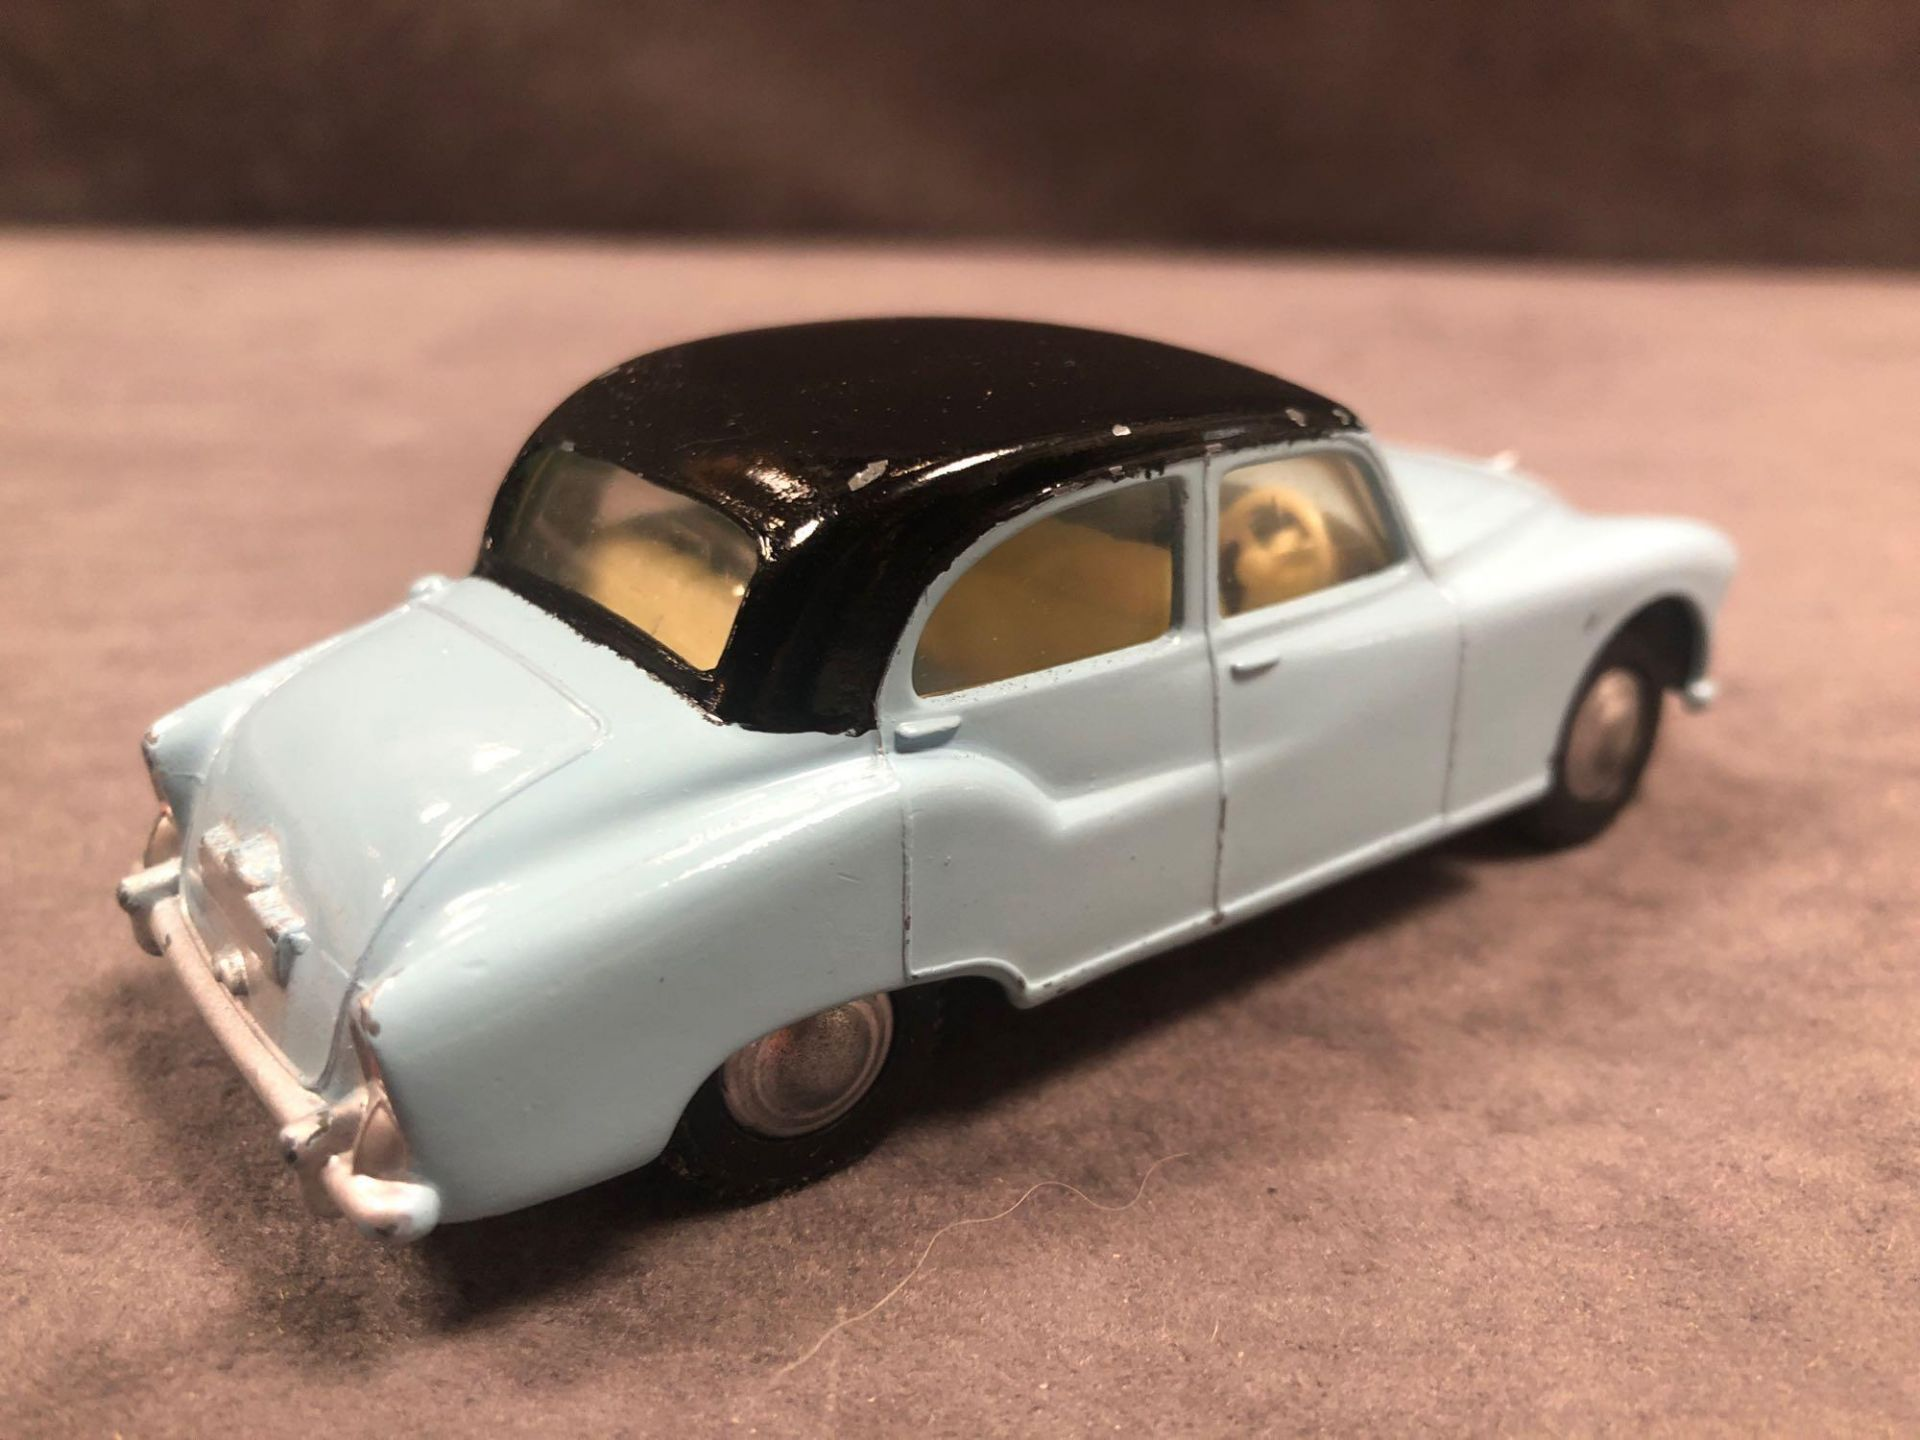 Spot-On 101 Armstrong Siddeley Sapphire Blue With Black Roof - Image 3 of 3